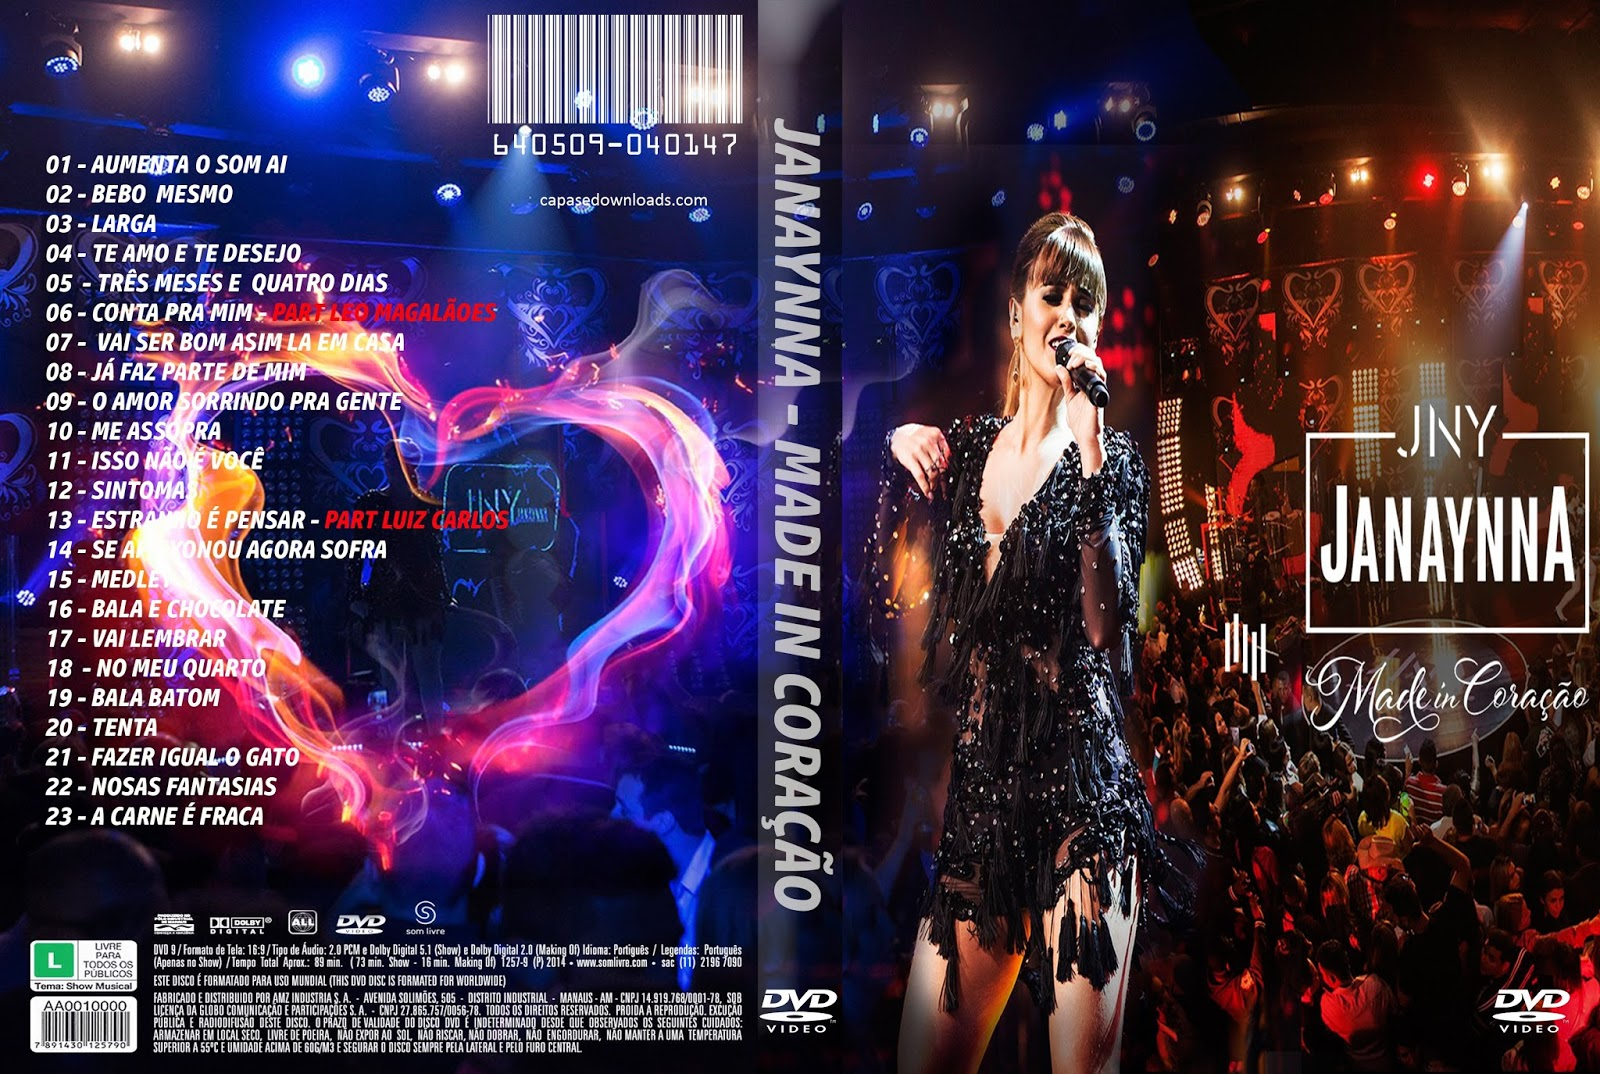 Download Janaynna Made In Coração DVD-R janaynna made in coracao